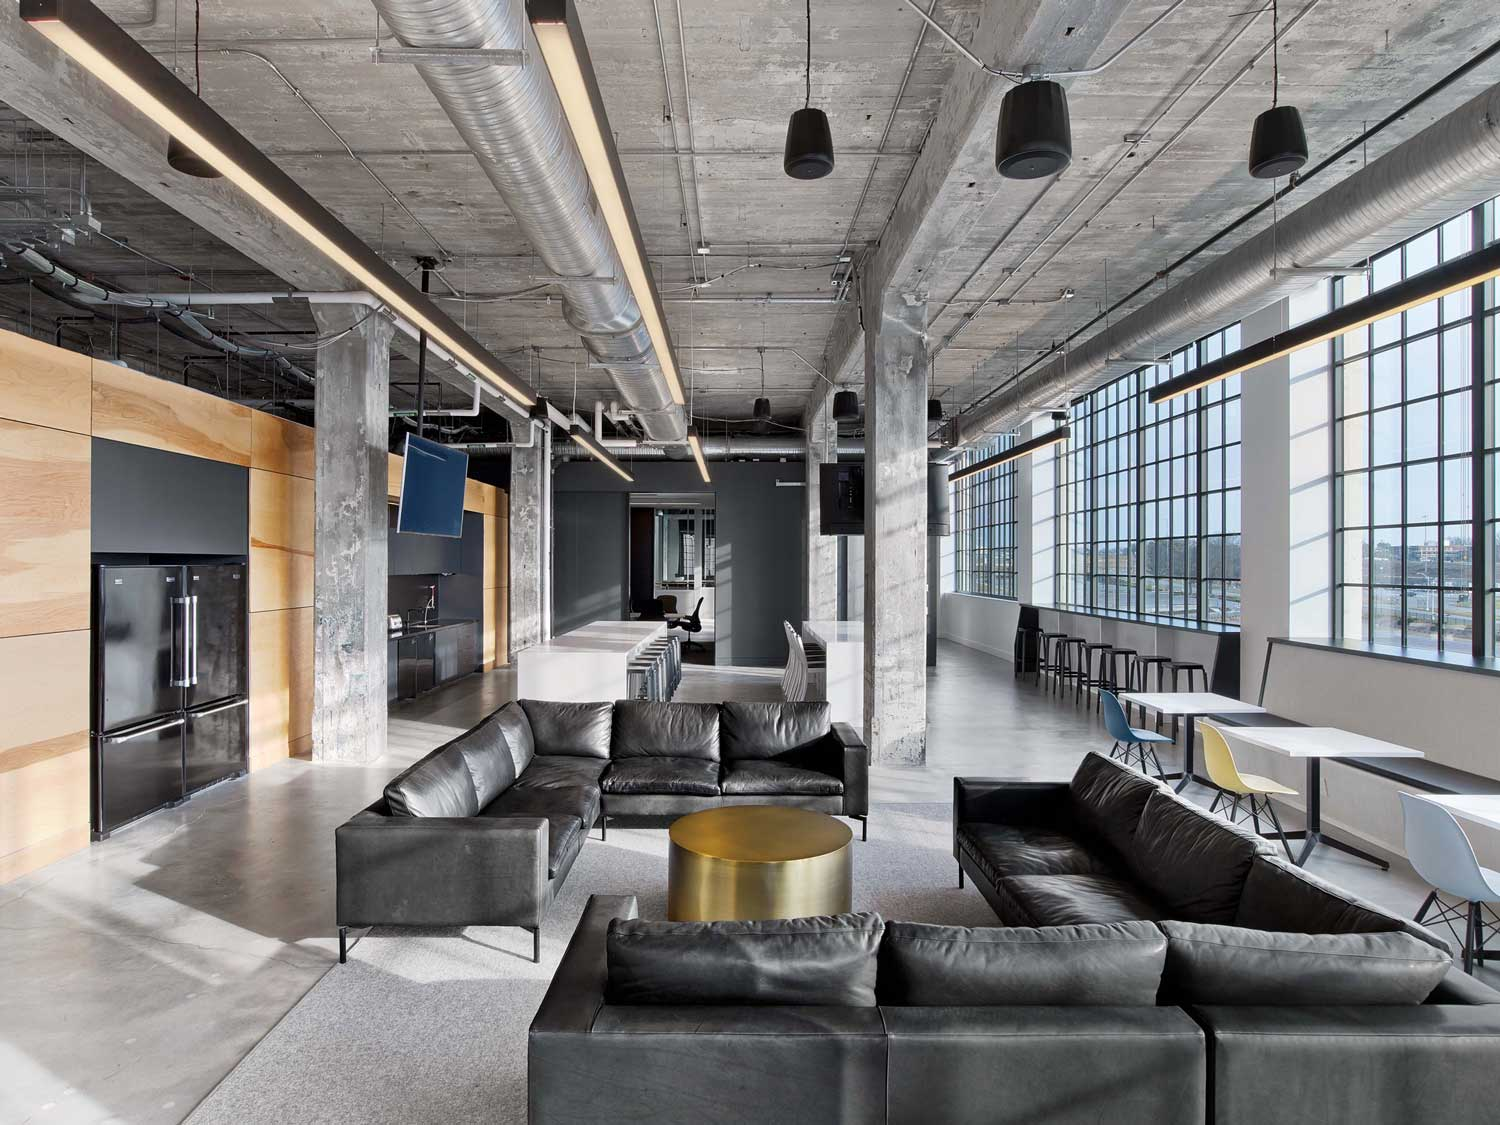 Mullenlowe ad agency office in winston salem us by tpg for Space design agency